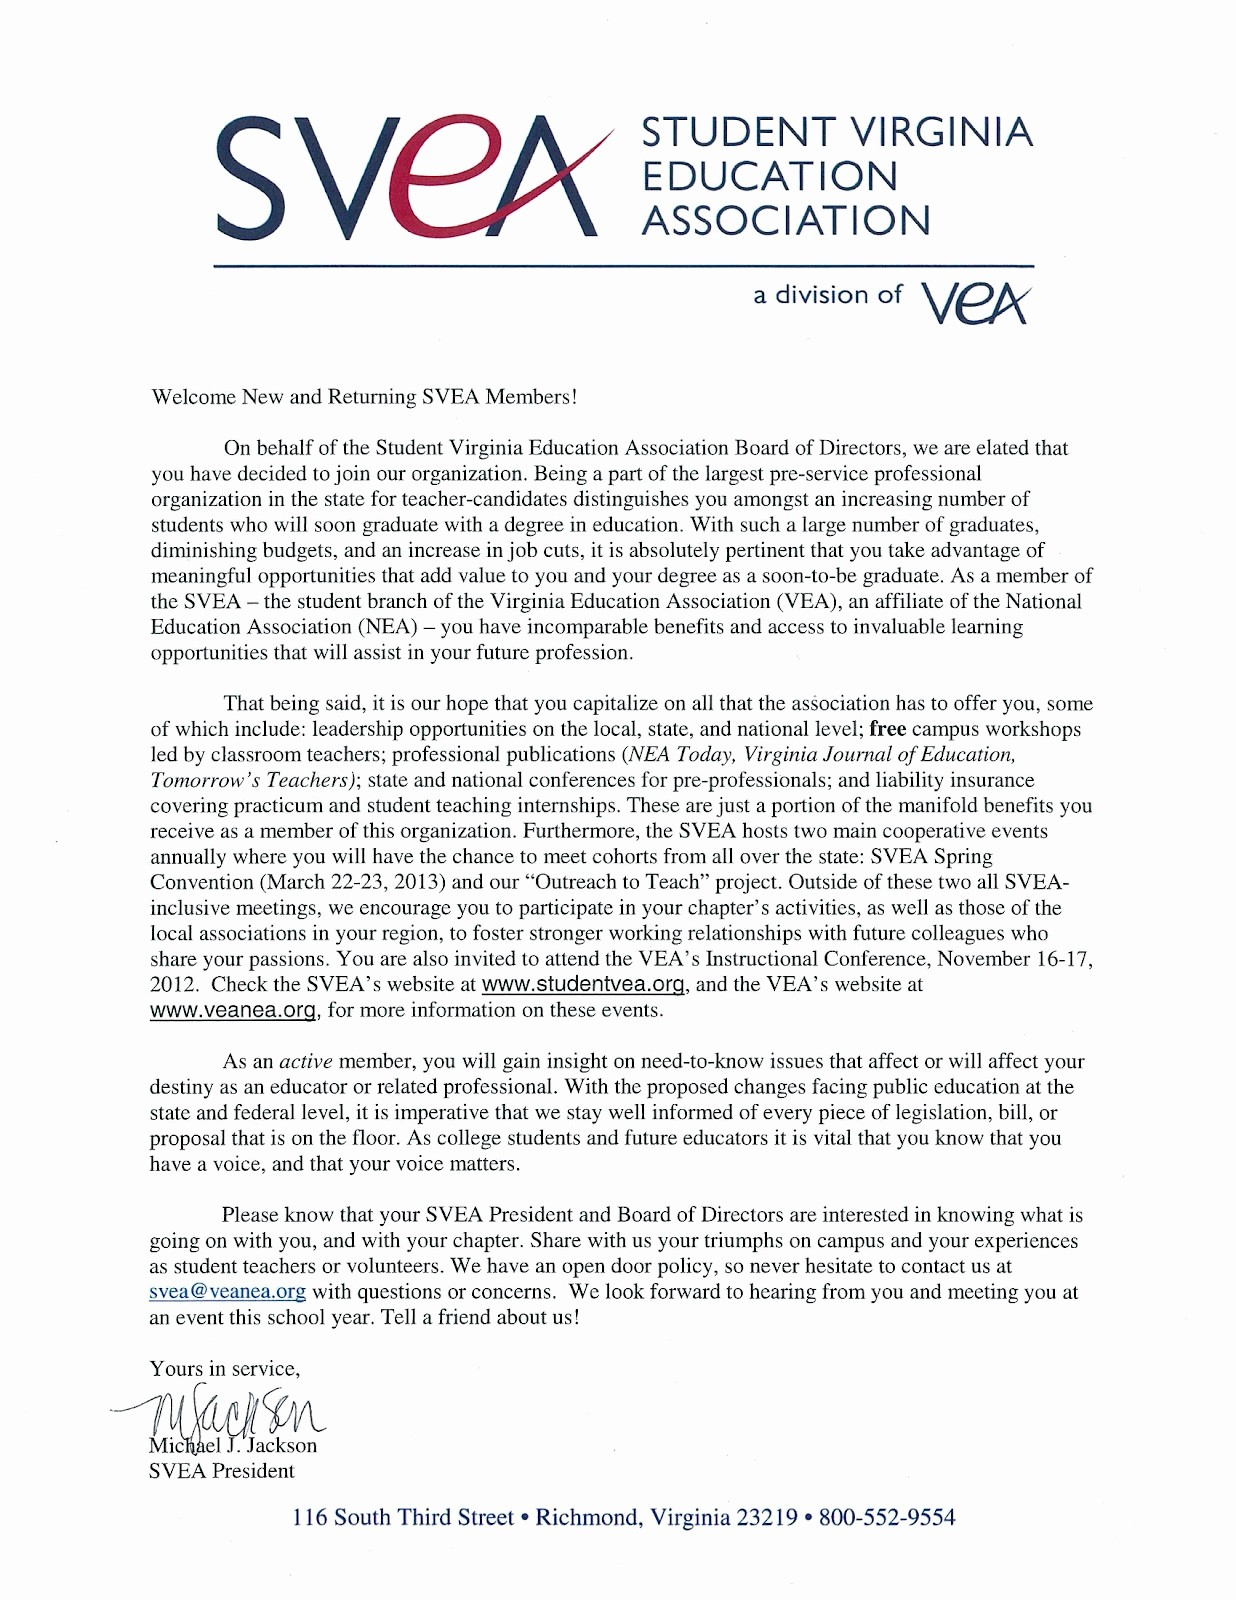 Sample Letters to Board Members Luxury Student Virginia Education association Wel E Letter